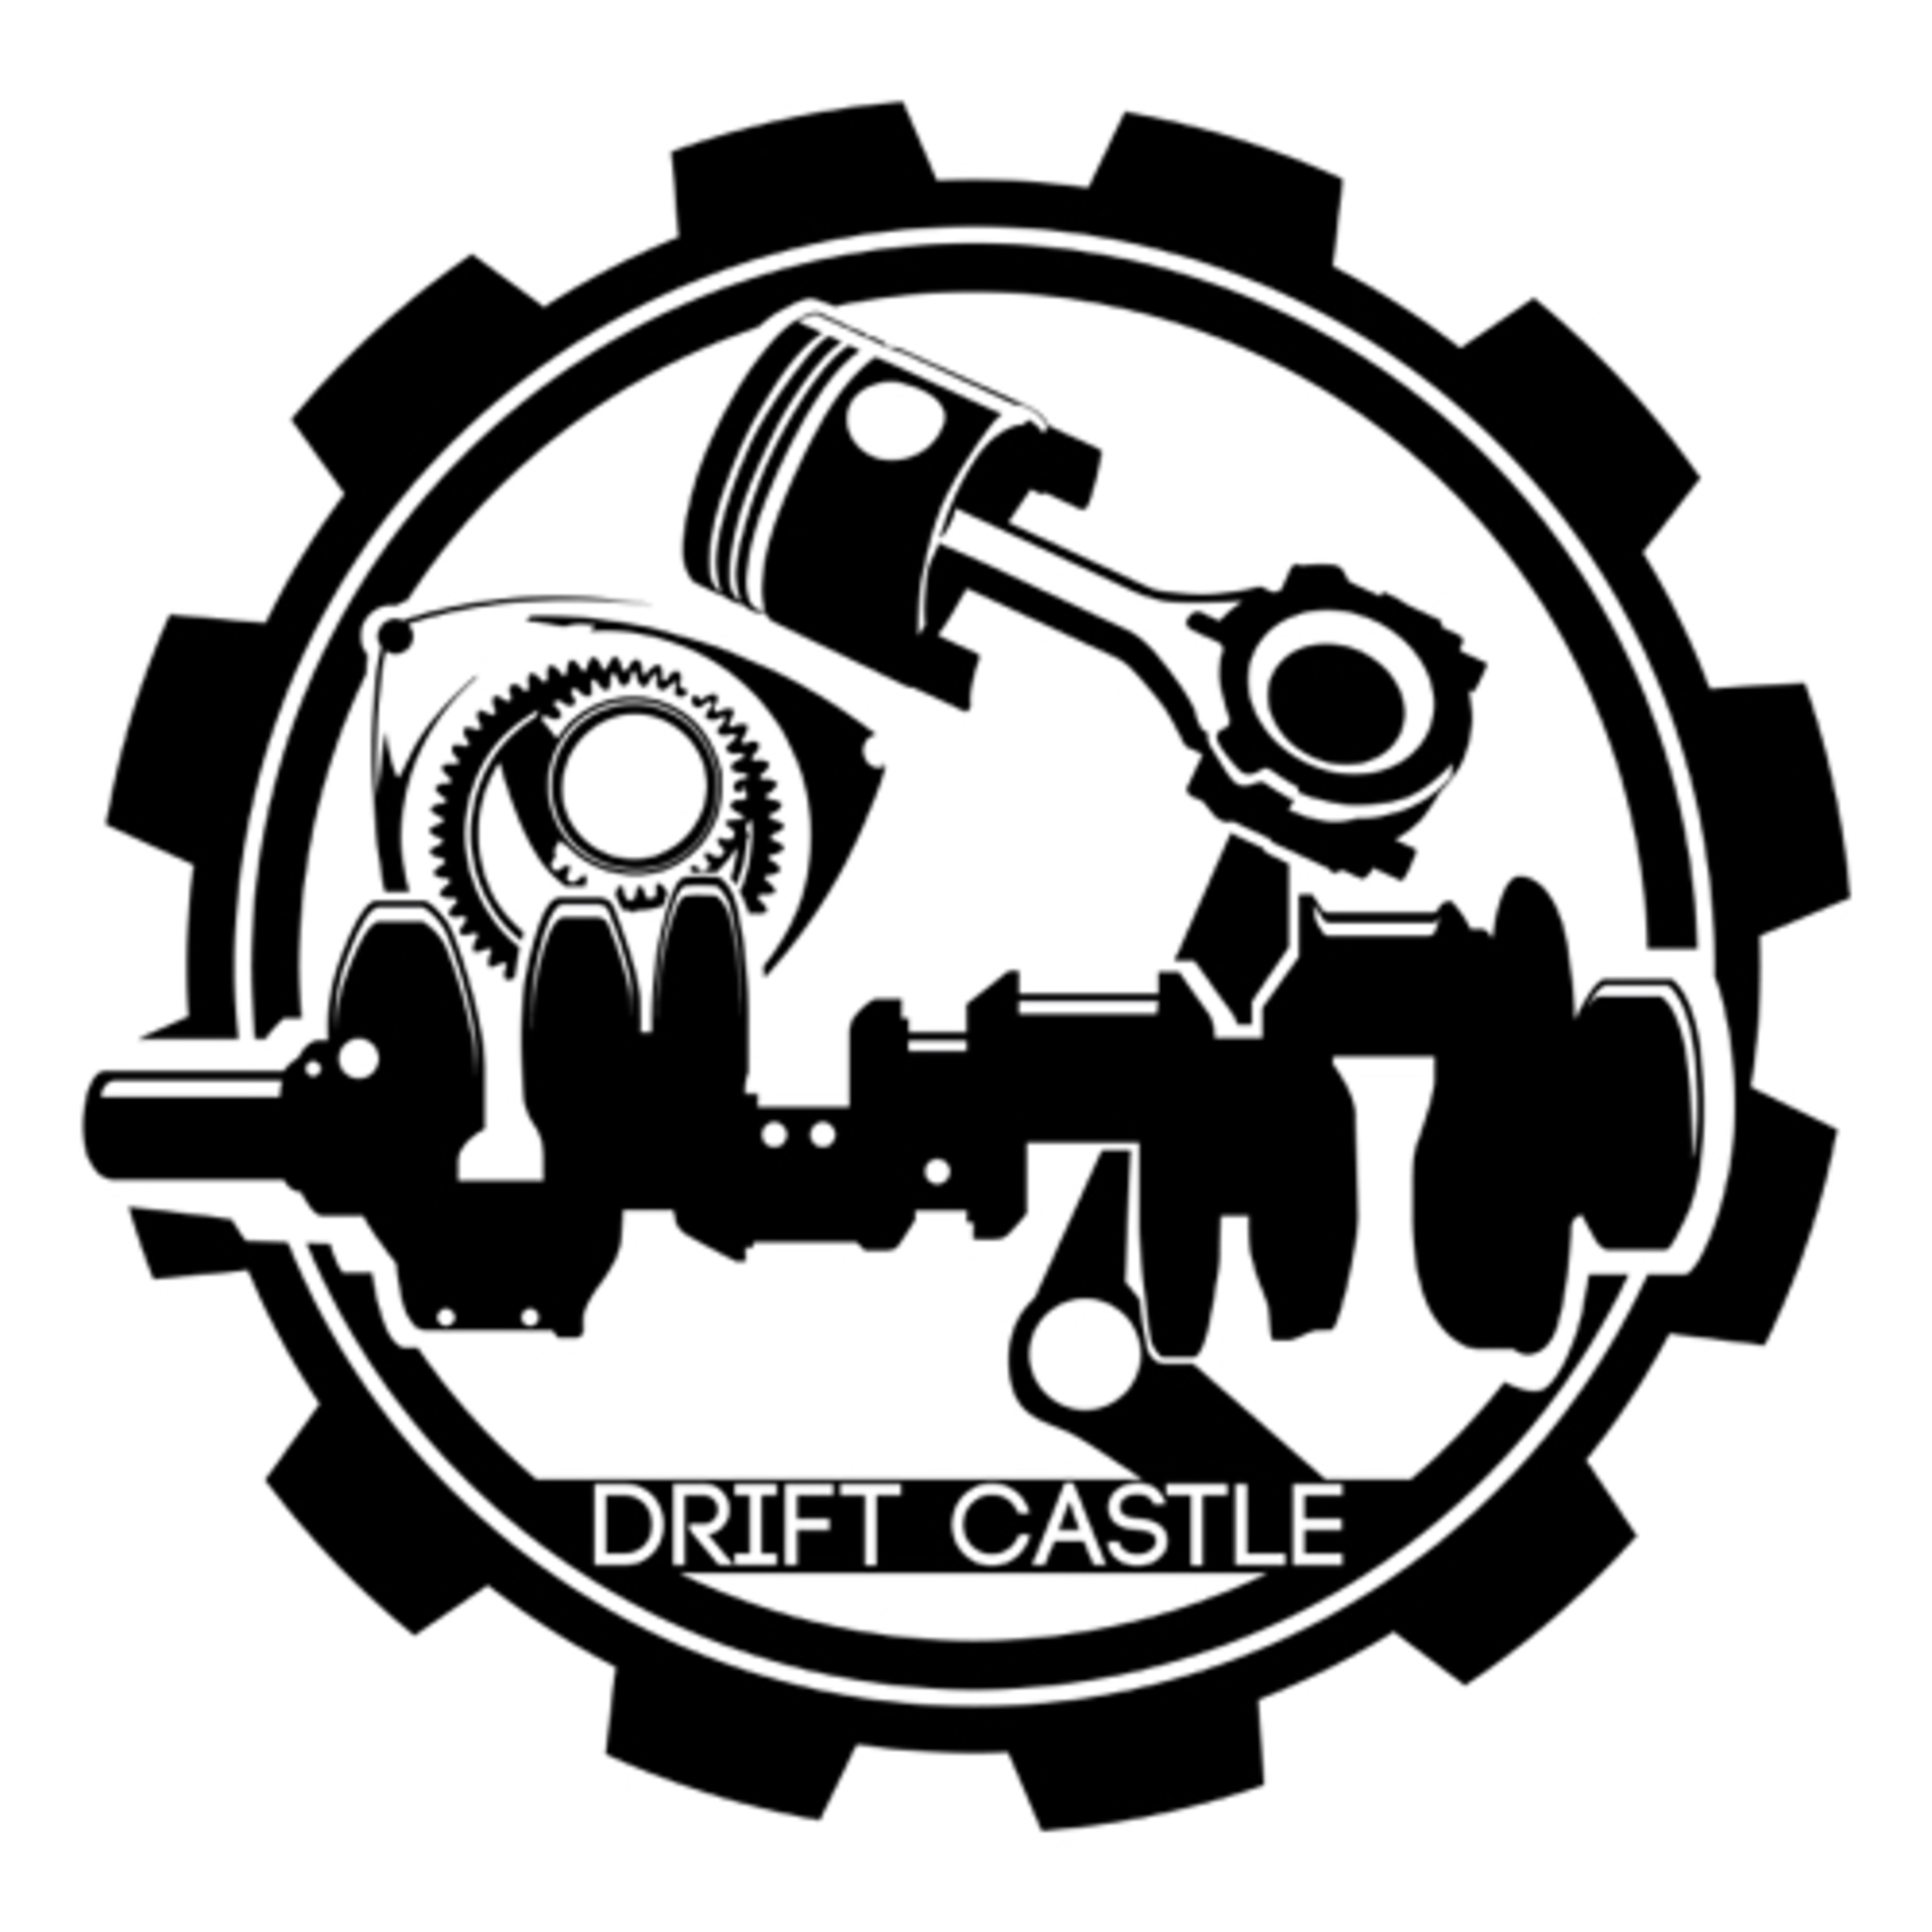 ANNOUNCEMENT OF DRIFTCASTLE PODCAST